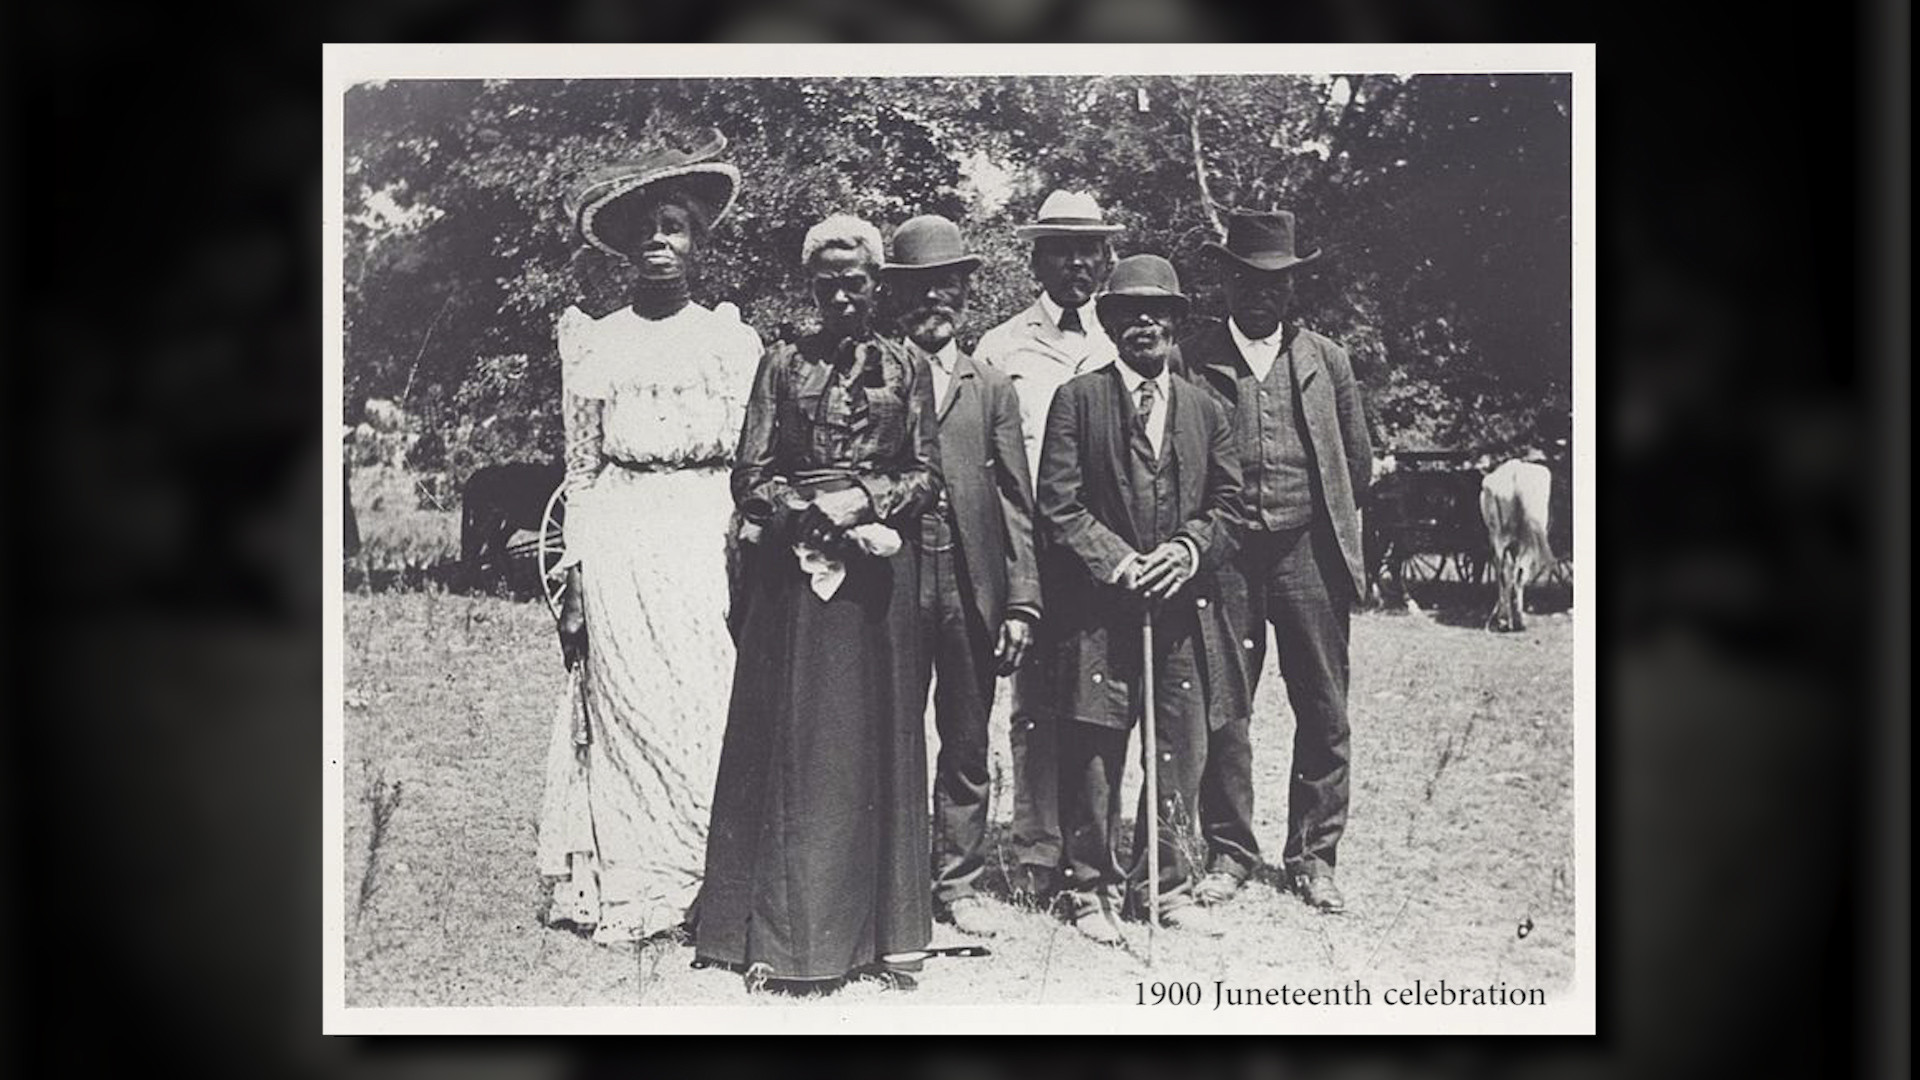 1920x1080 This Week in Black History: Juneteenth